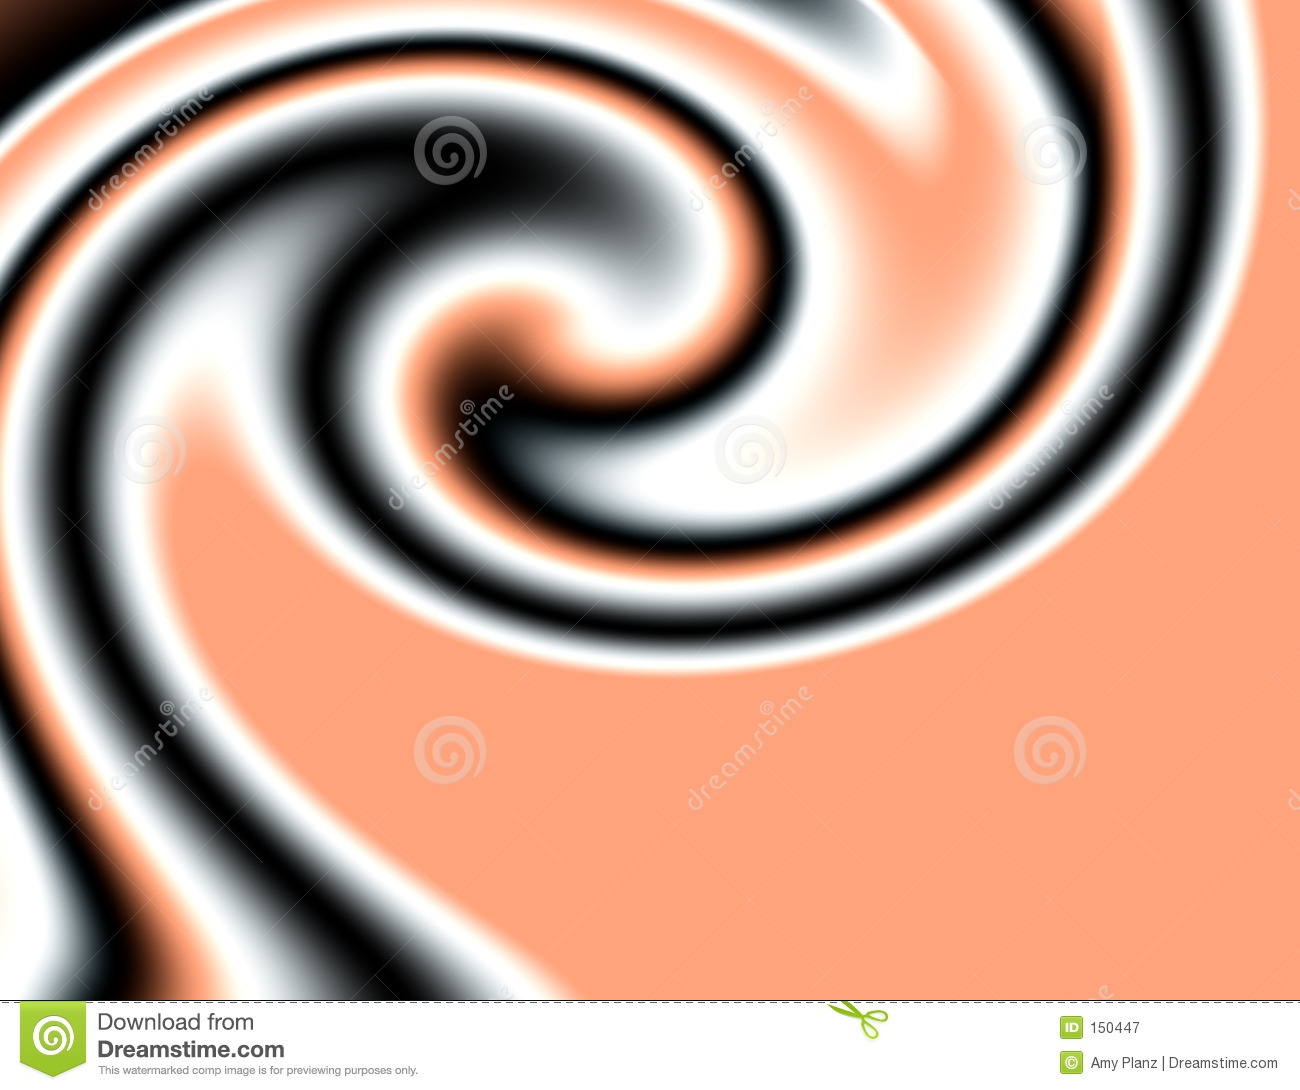 peach and black swirl stock illustration illustration of swirl 150447 https www dreamstime com royalty free stock photography peach black swirl image150447